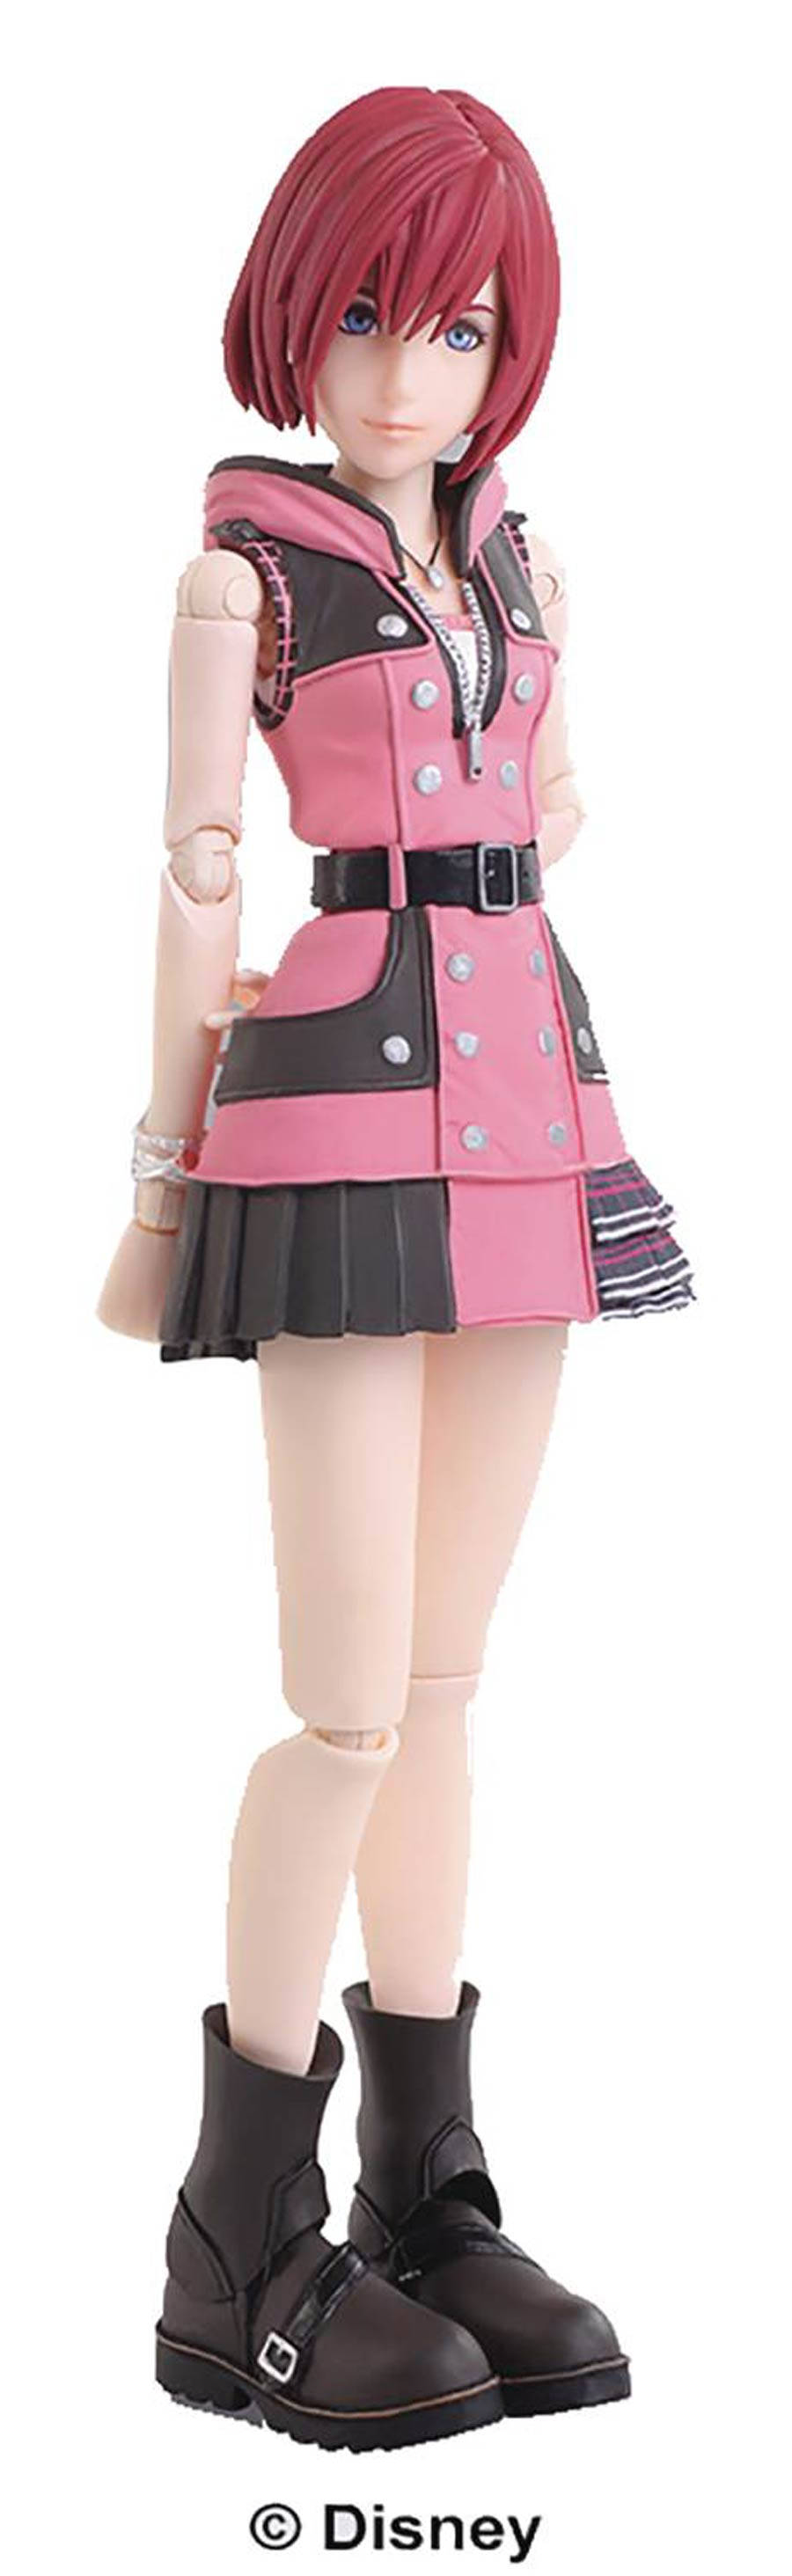 Kingdom Hearts III Bring Arts Action Figure - Kairi